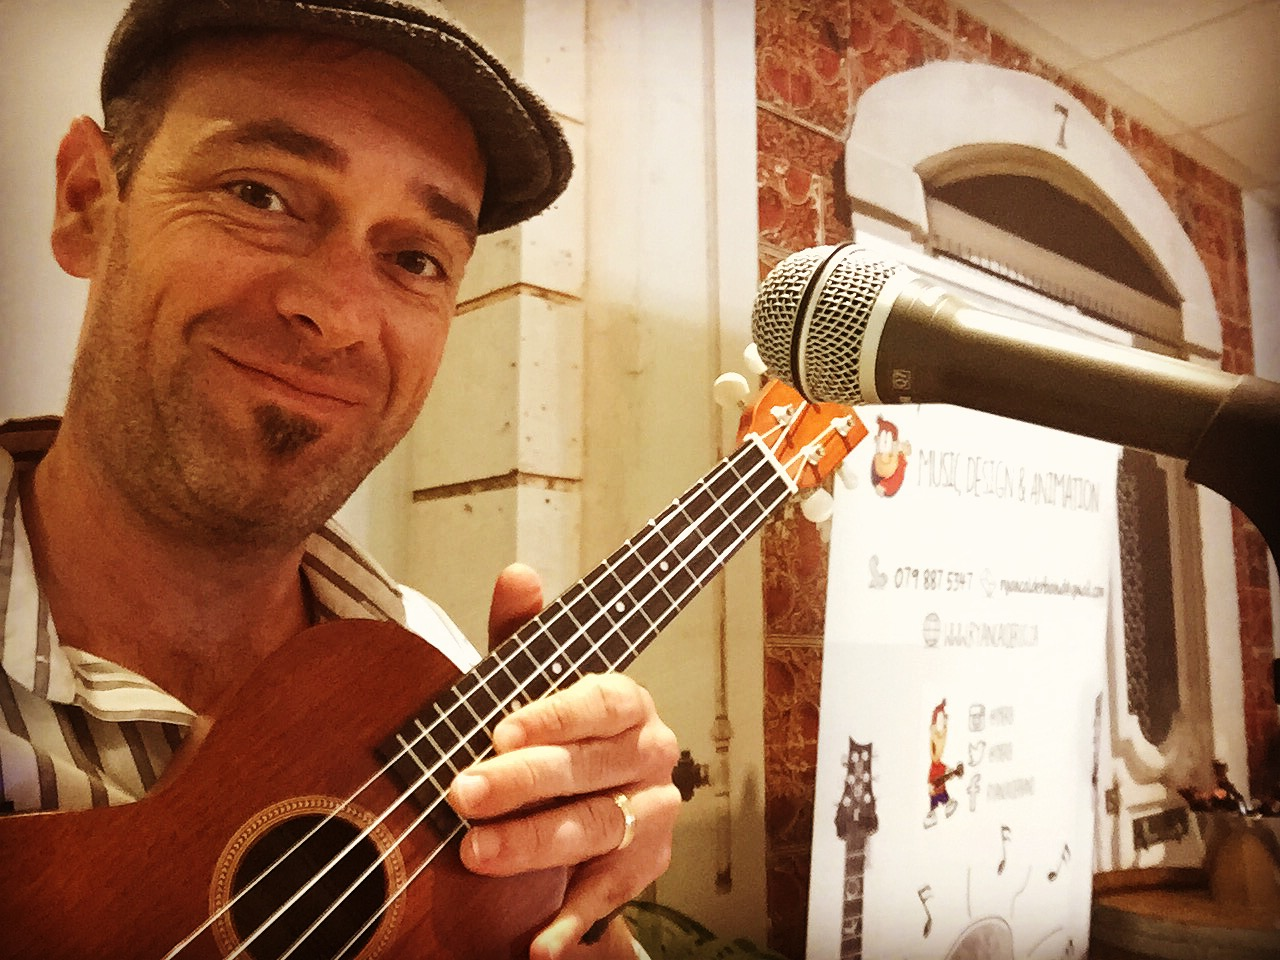 Who doesn't smile when a ukulele enters the room?